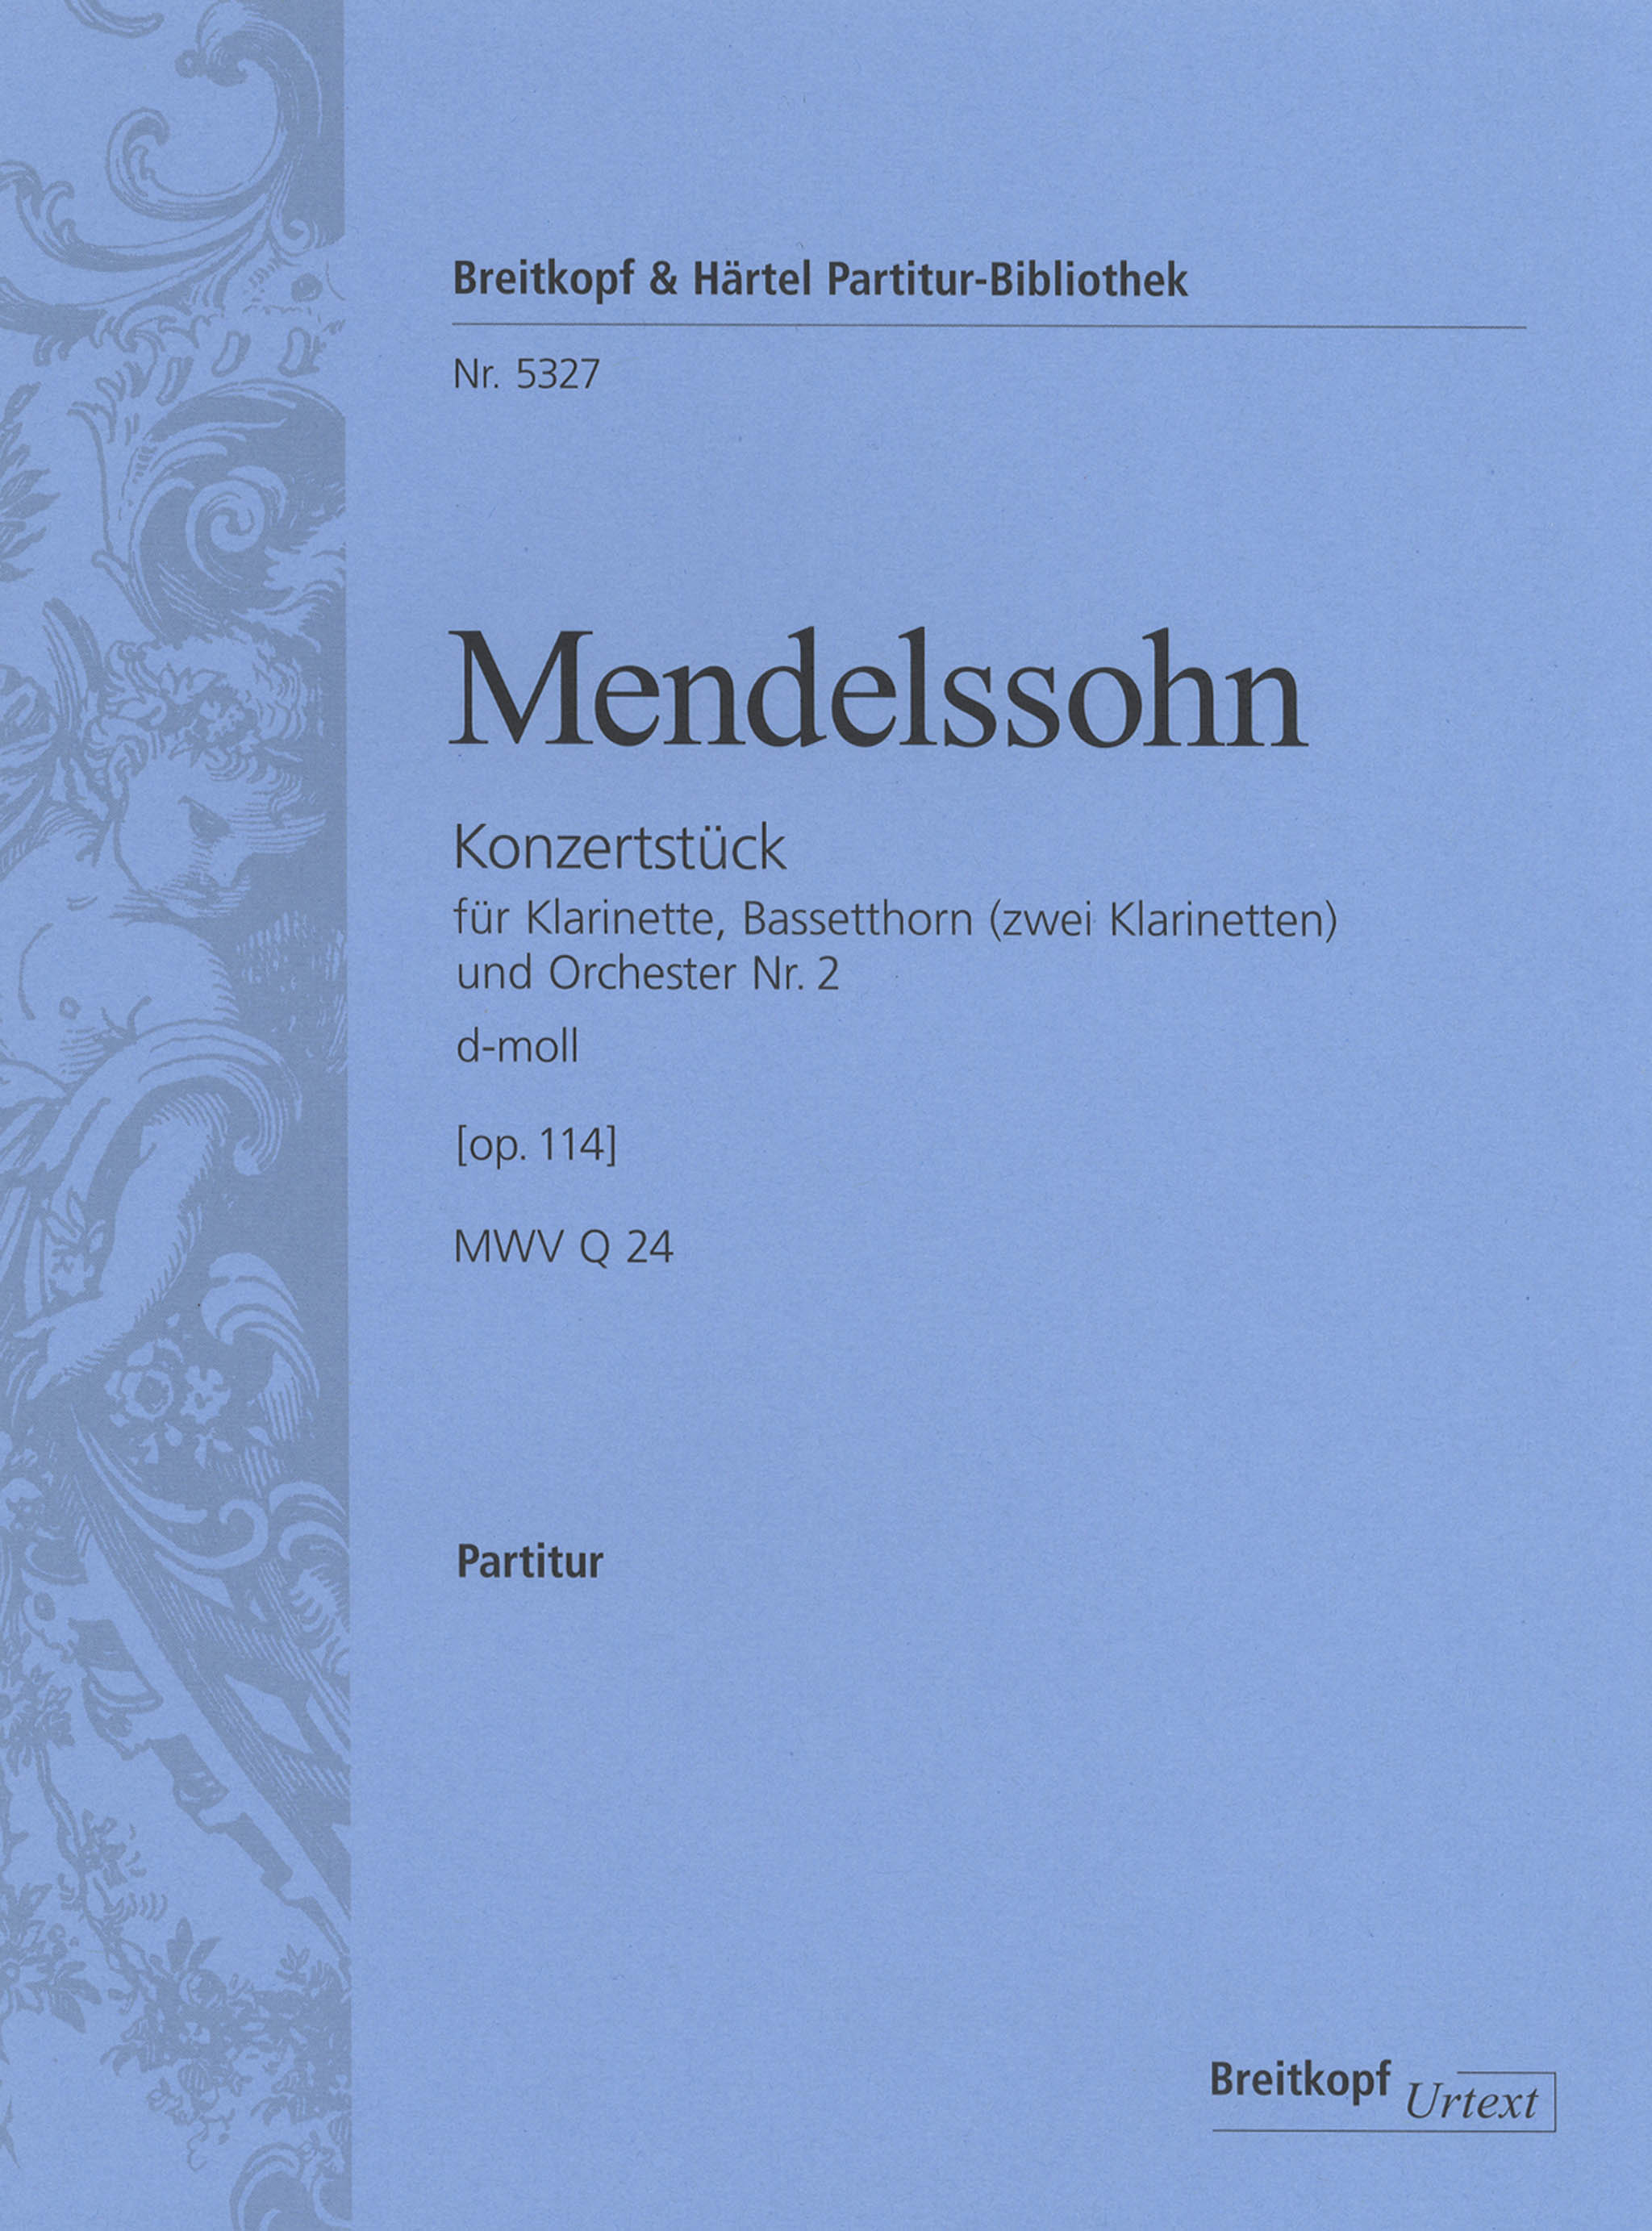 Mendelssohn Concert Piece No. 2 in D Minor, Op. 114 Cover